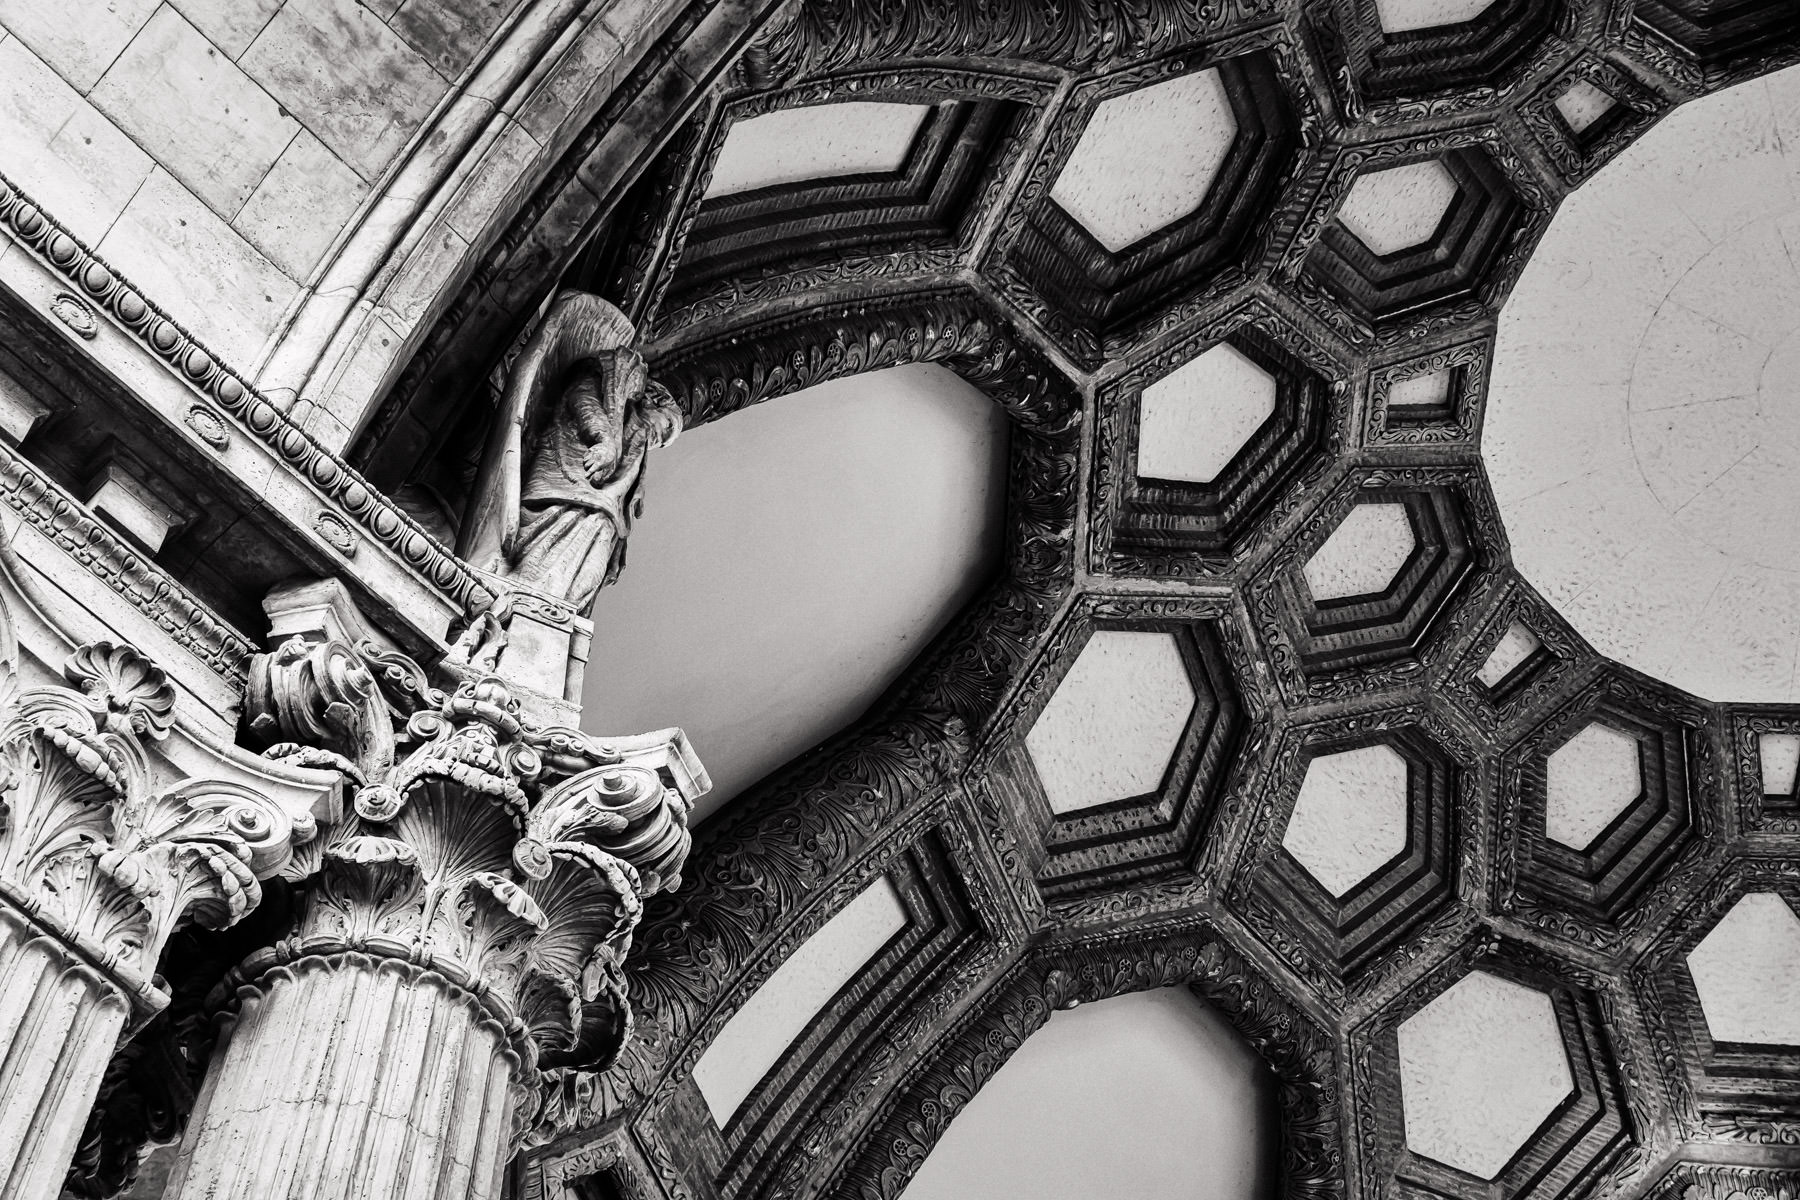 A statue watches over the space under the rotunda of San Francisco's Palace of Fine Arts.